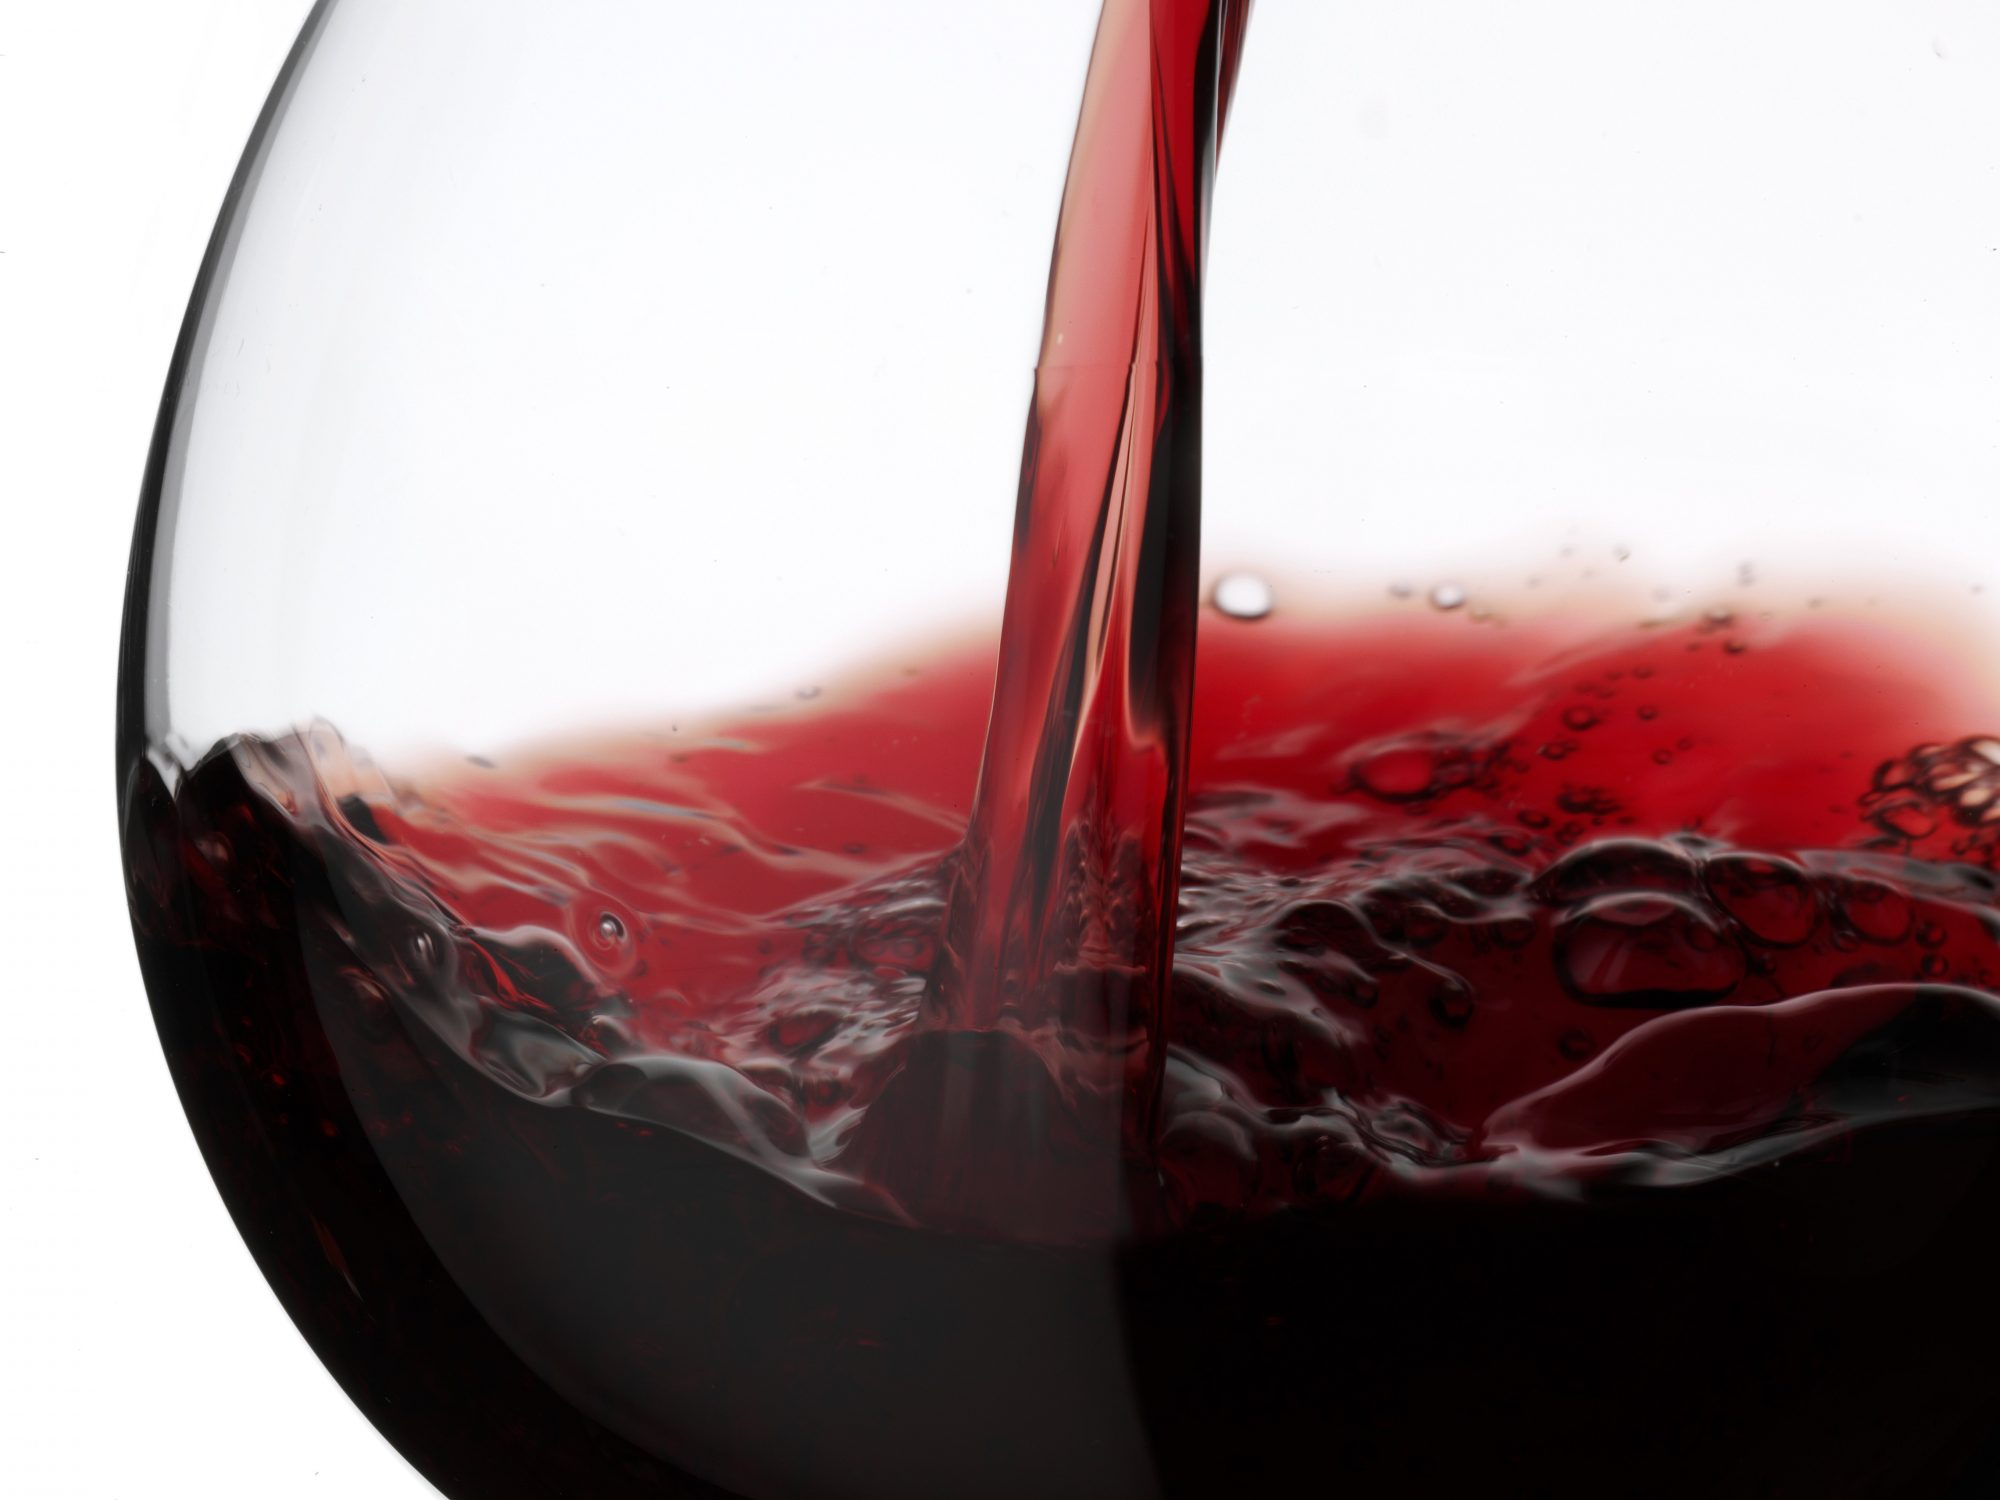 Close up of red wine pouring into glass